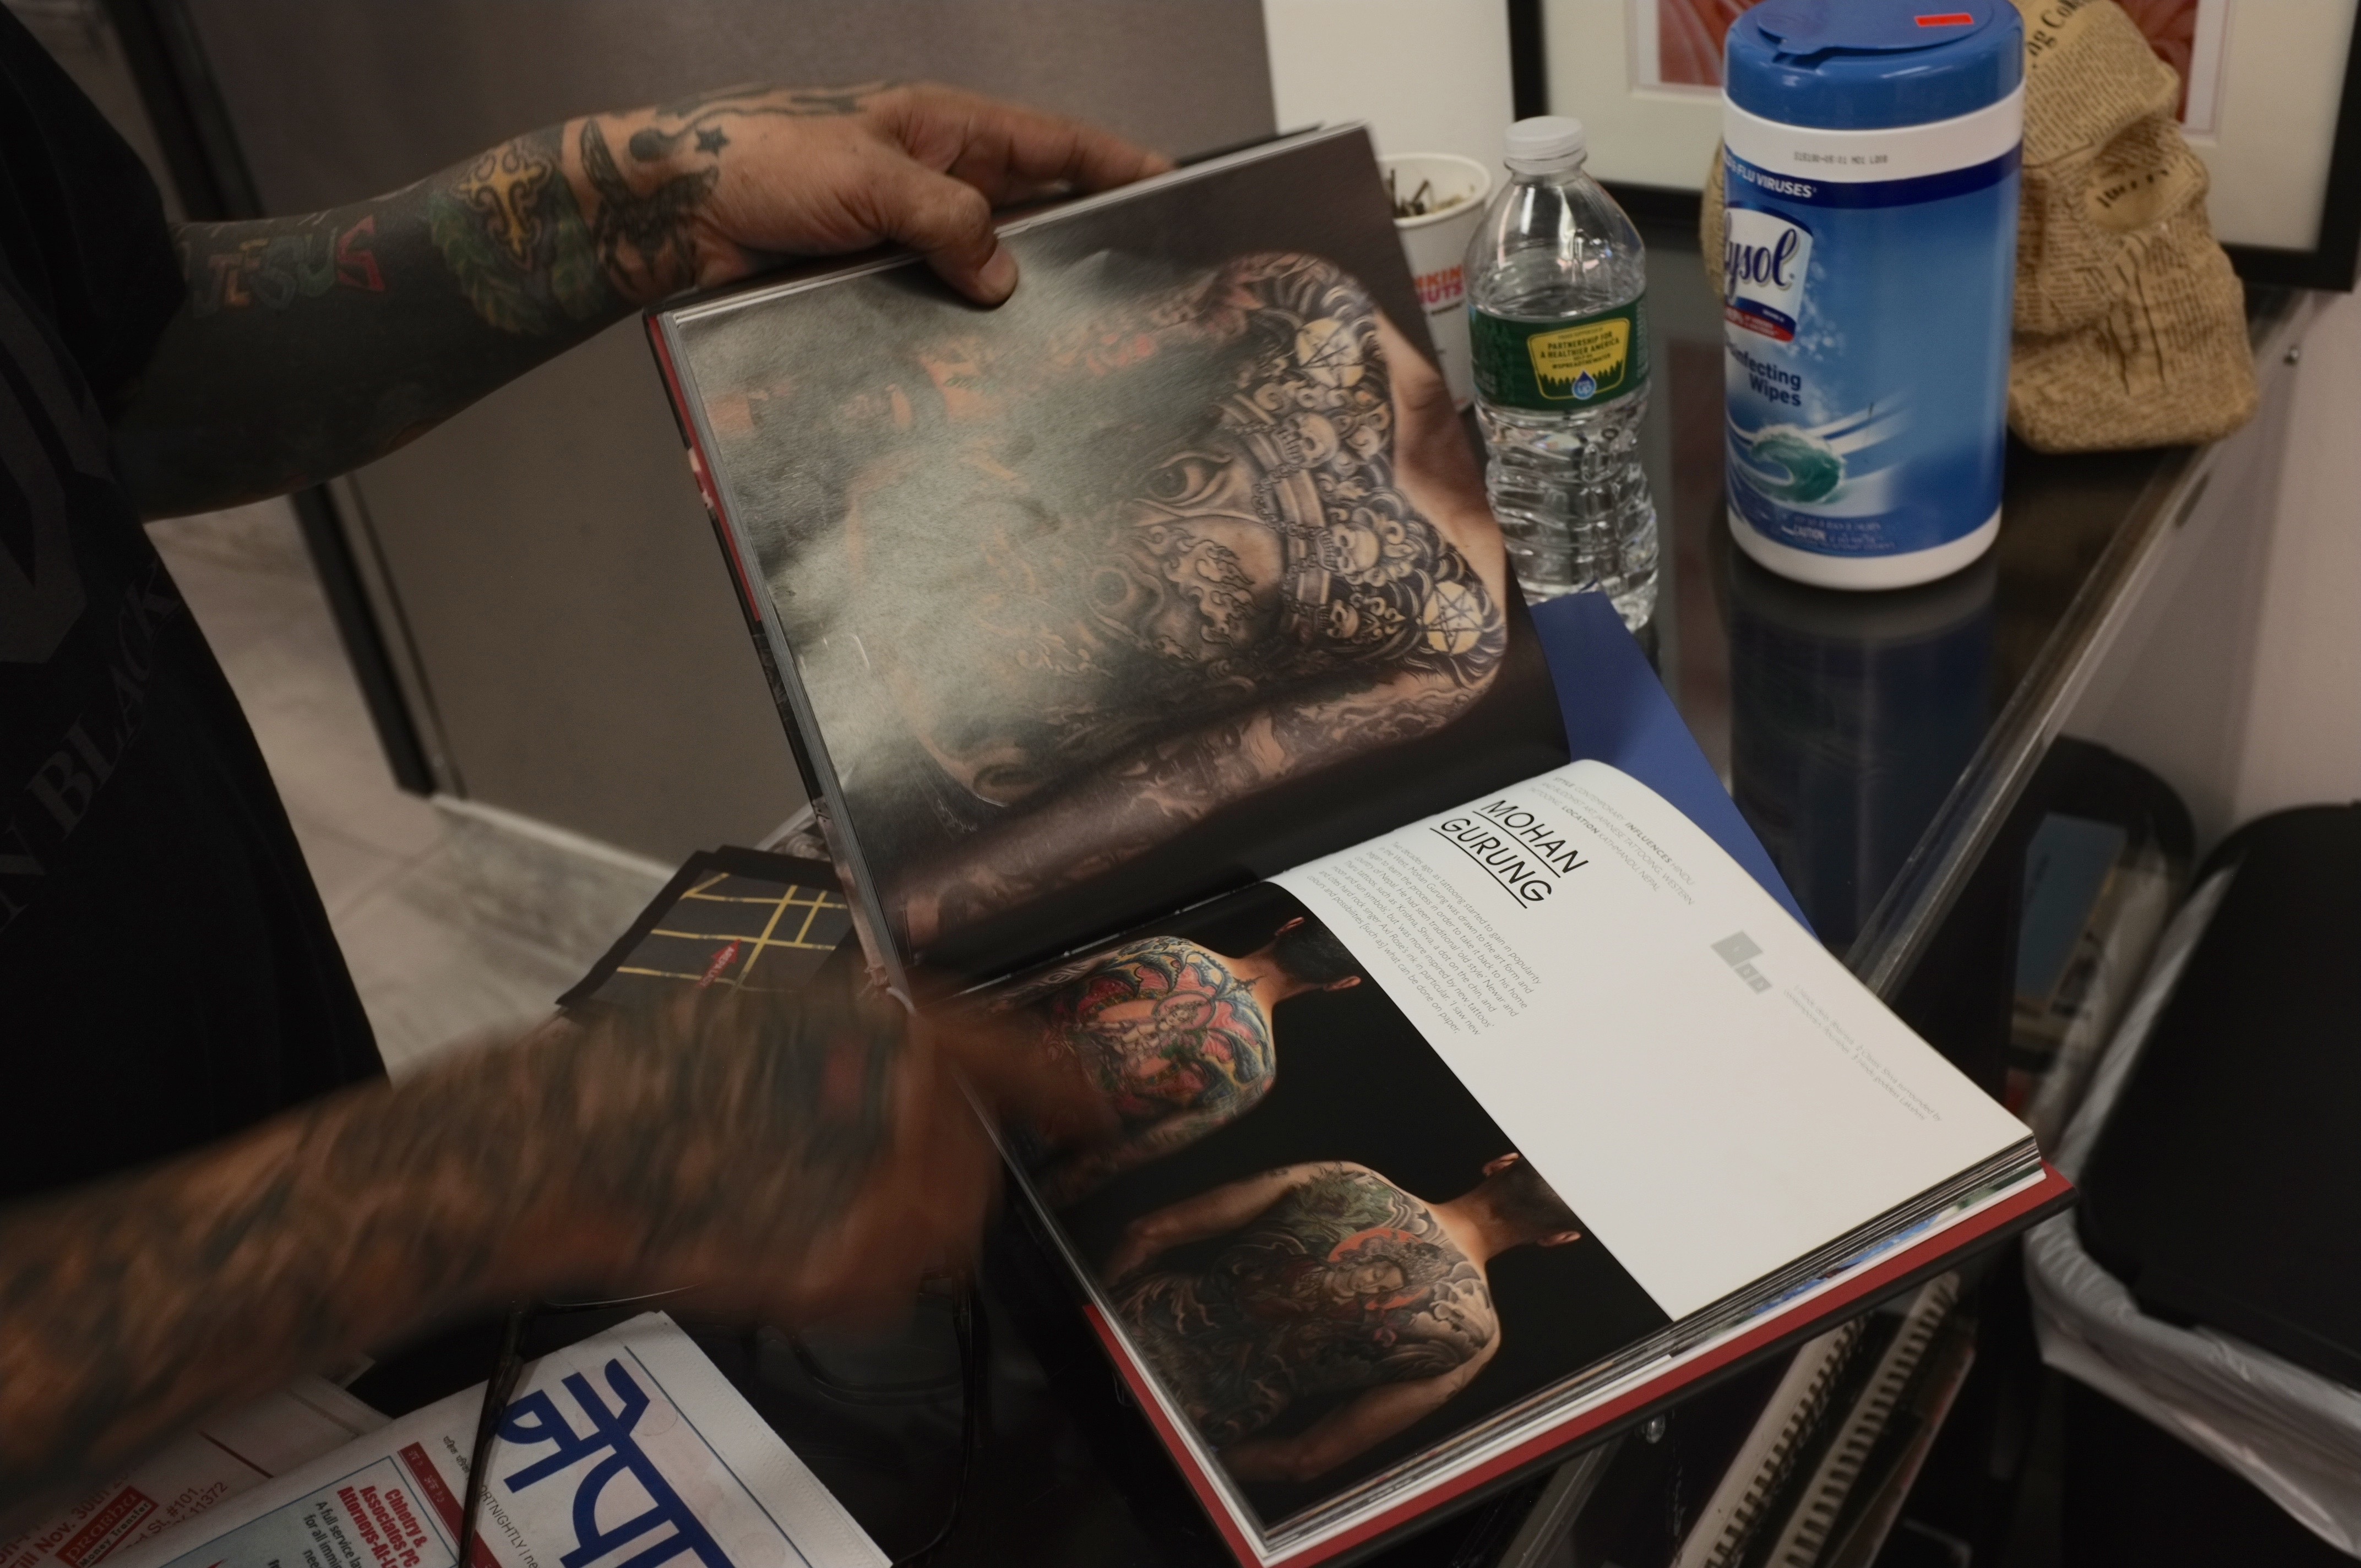 Legendary nepali tattoo artist opens jackson heights shop mohans designed featured in a book about tattoo artists dnainfokatie honan magicingreecefo Image collections